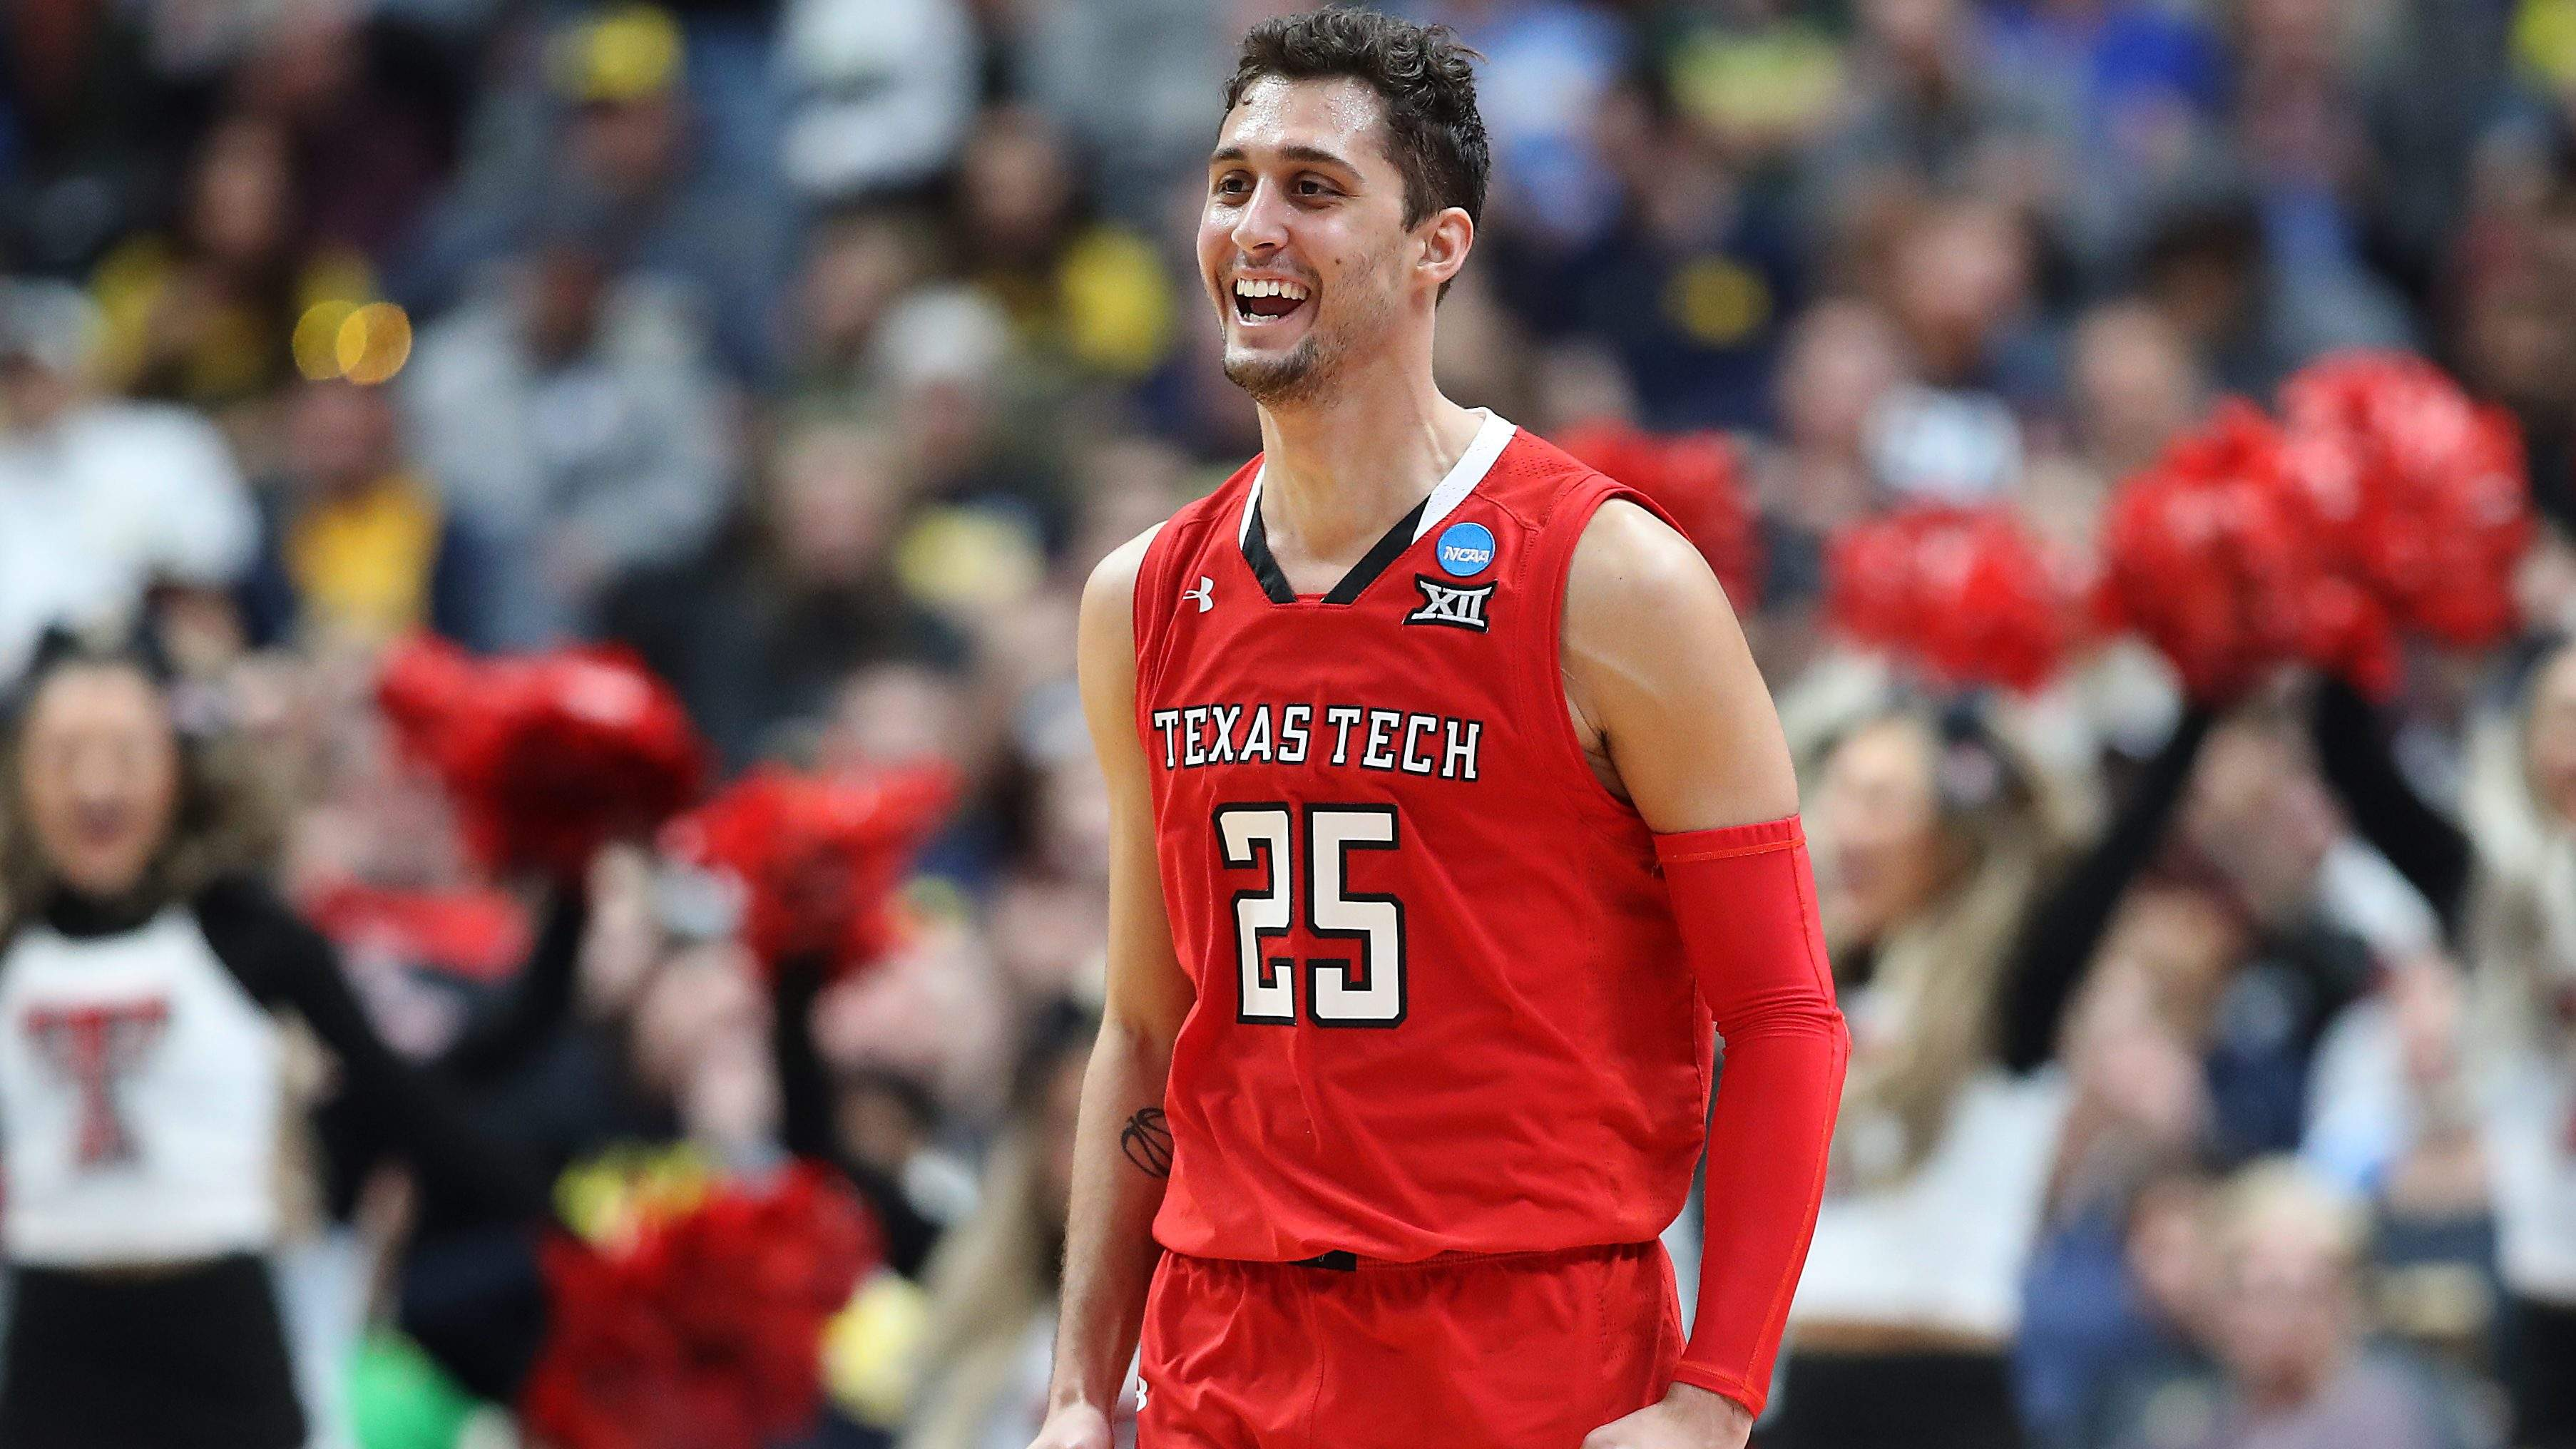 davide moretti (Texas Tech)